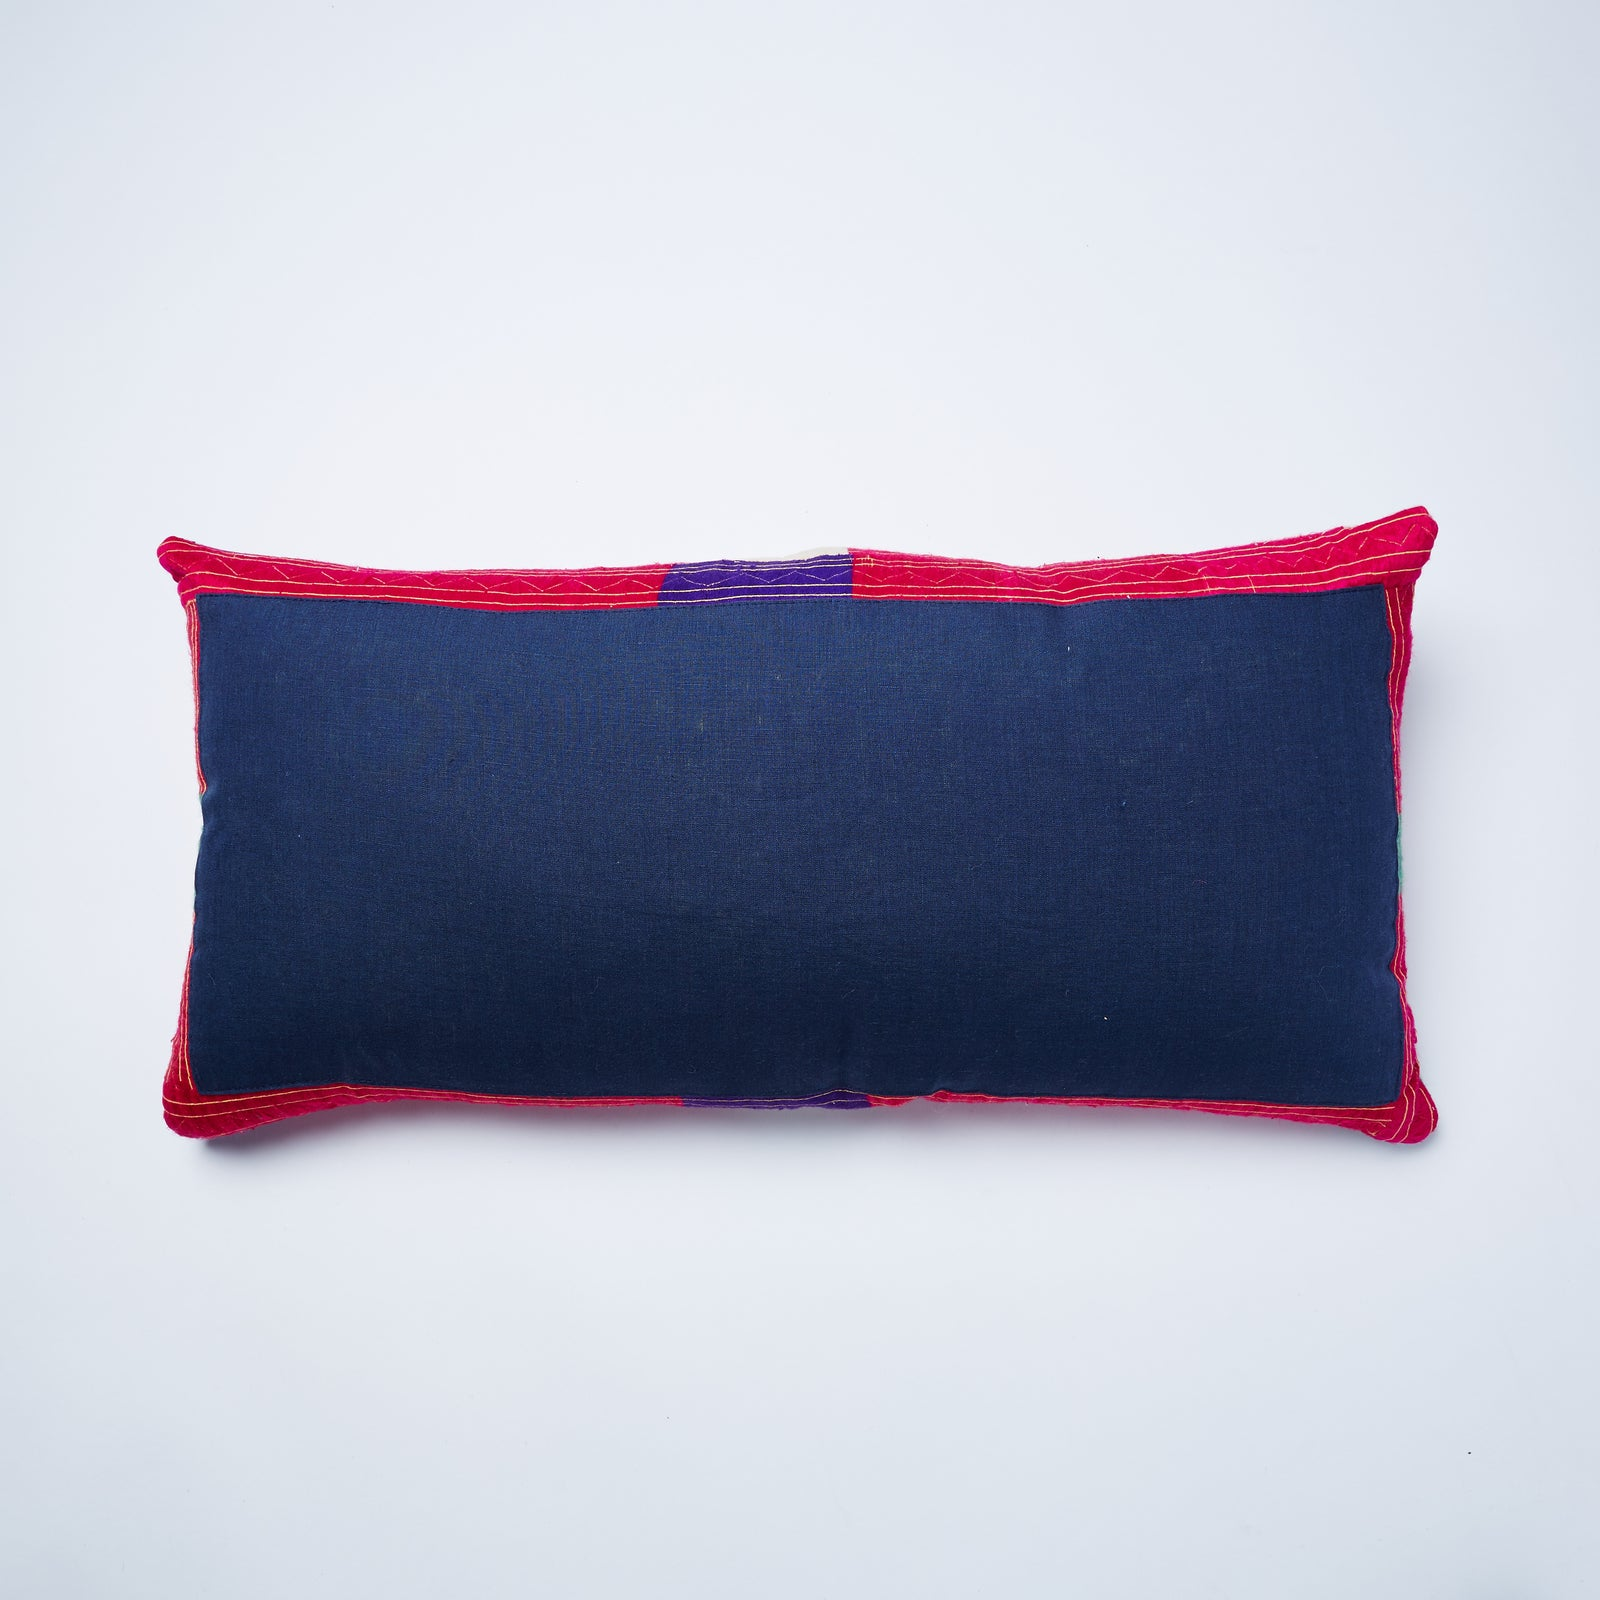 A hand picked blue linen back cover, with hints of the pink silk around the edge, perfectly completes this dashing cushion. Duck feather filling